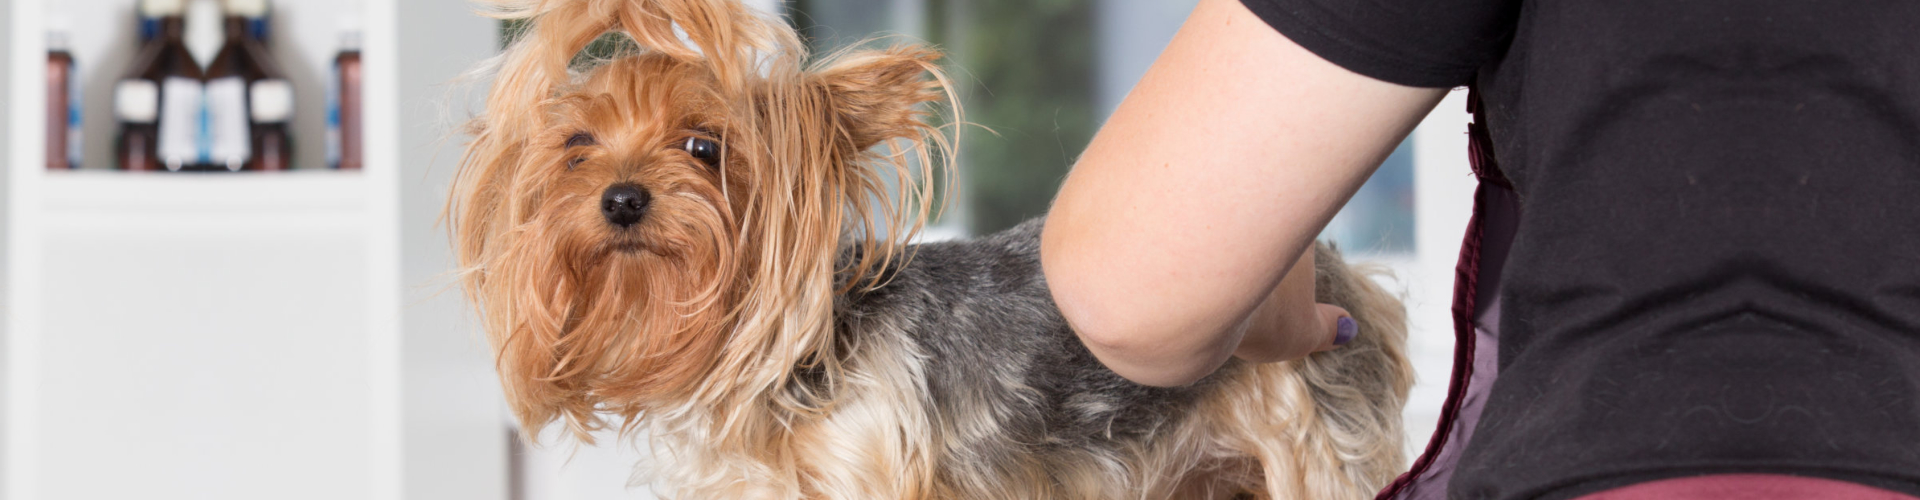 Yorkshire terrier dog on a hairstyle in a grooming salon